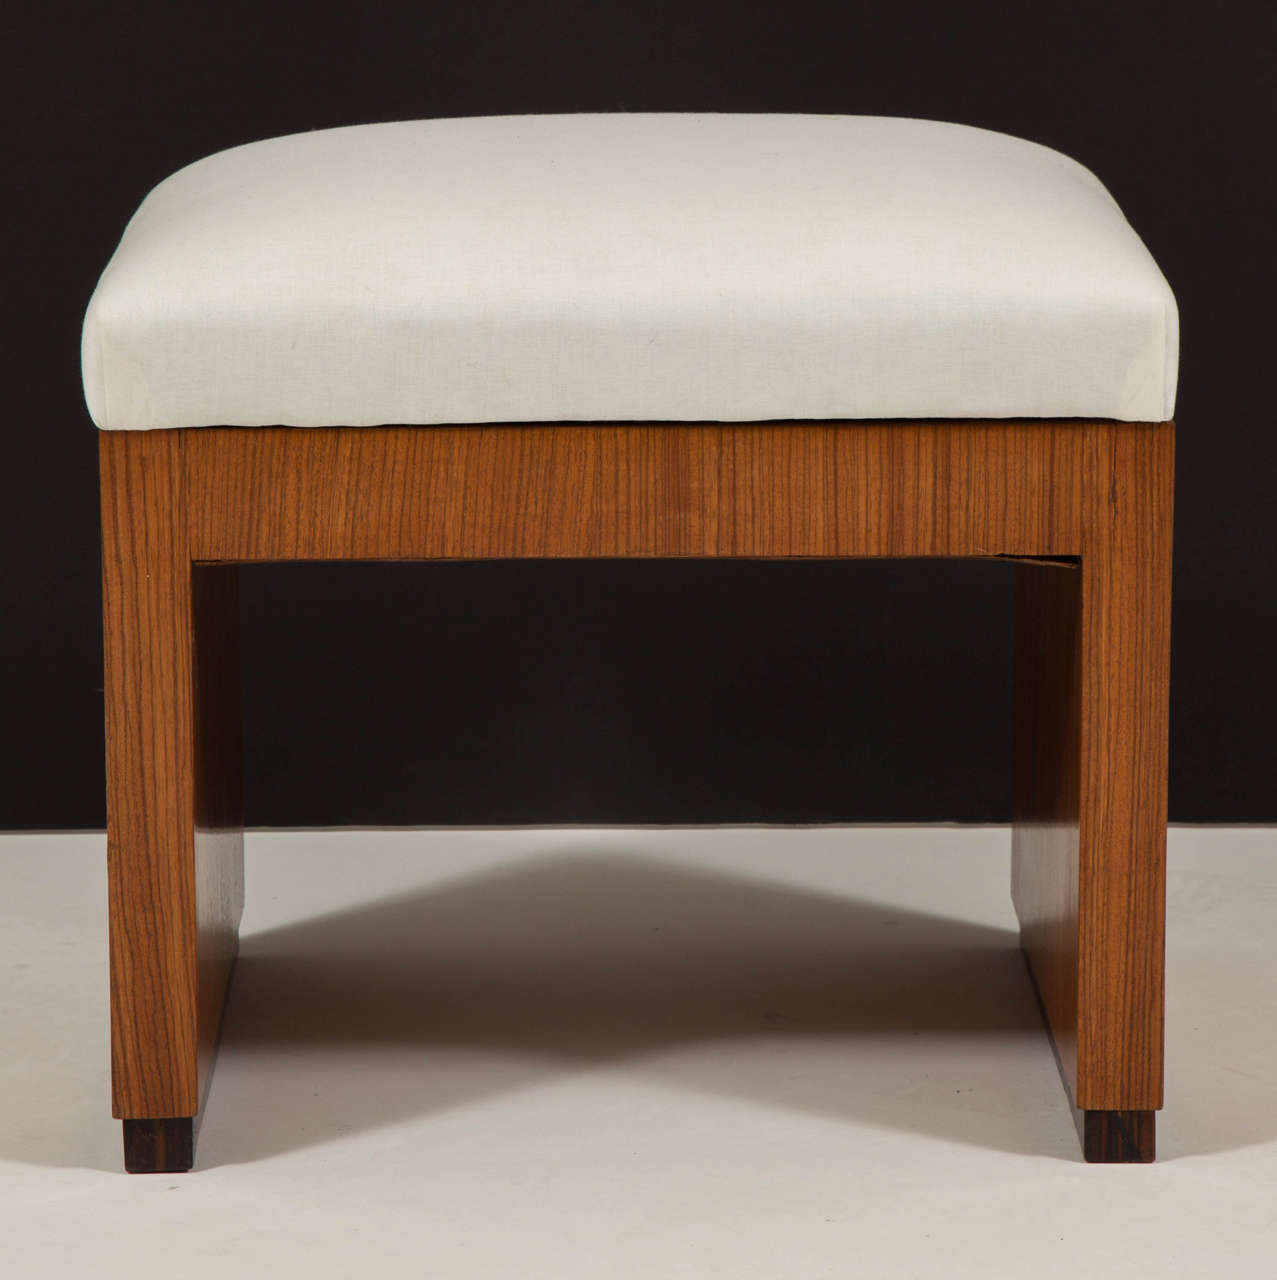 Early 20th century Art Deco style palisander bench, upholstered seat on rectangular base.